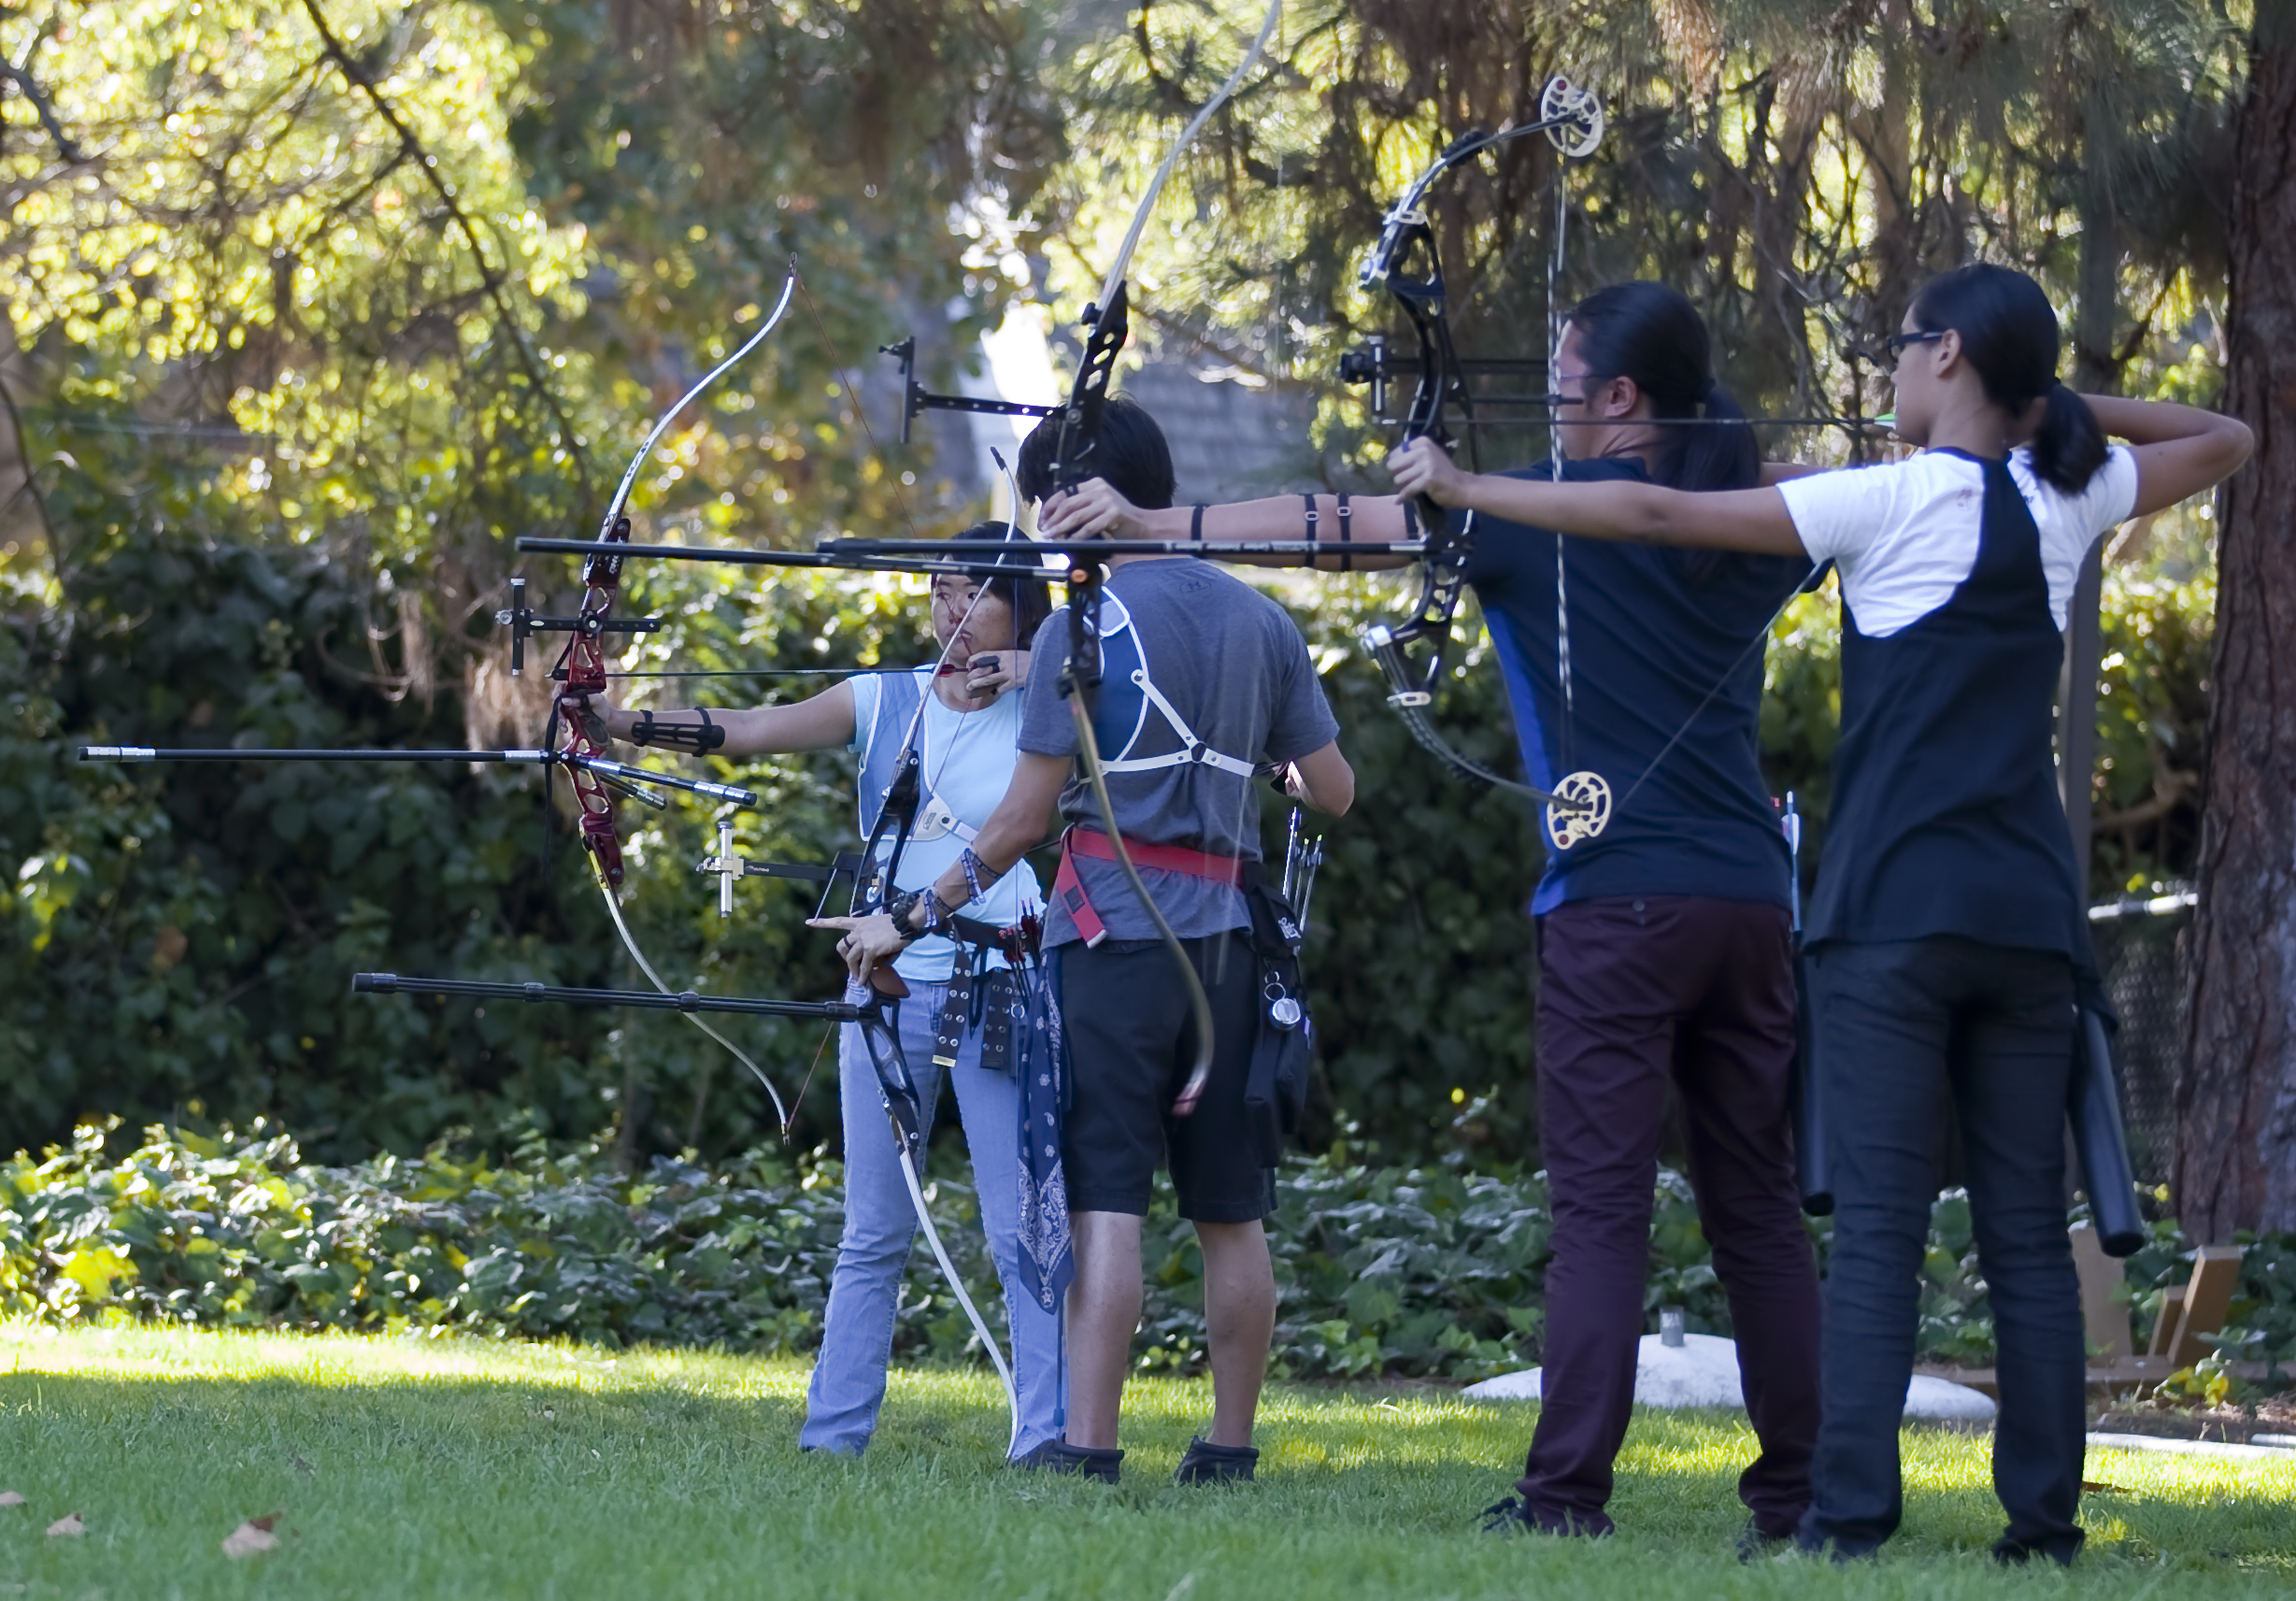 The members of UCLA's Club Archery team, who came in fourth at Nationals last year, practice at Sycamore Fields afternoons Wednesday to Sunday. The team held New Archers Week, a festival put on to recruit new members, on the Intramural Field last week. The location change from the team's practice field helped the team boast a heavy turnout of interested new archers.